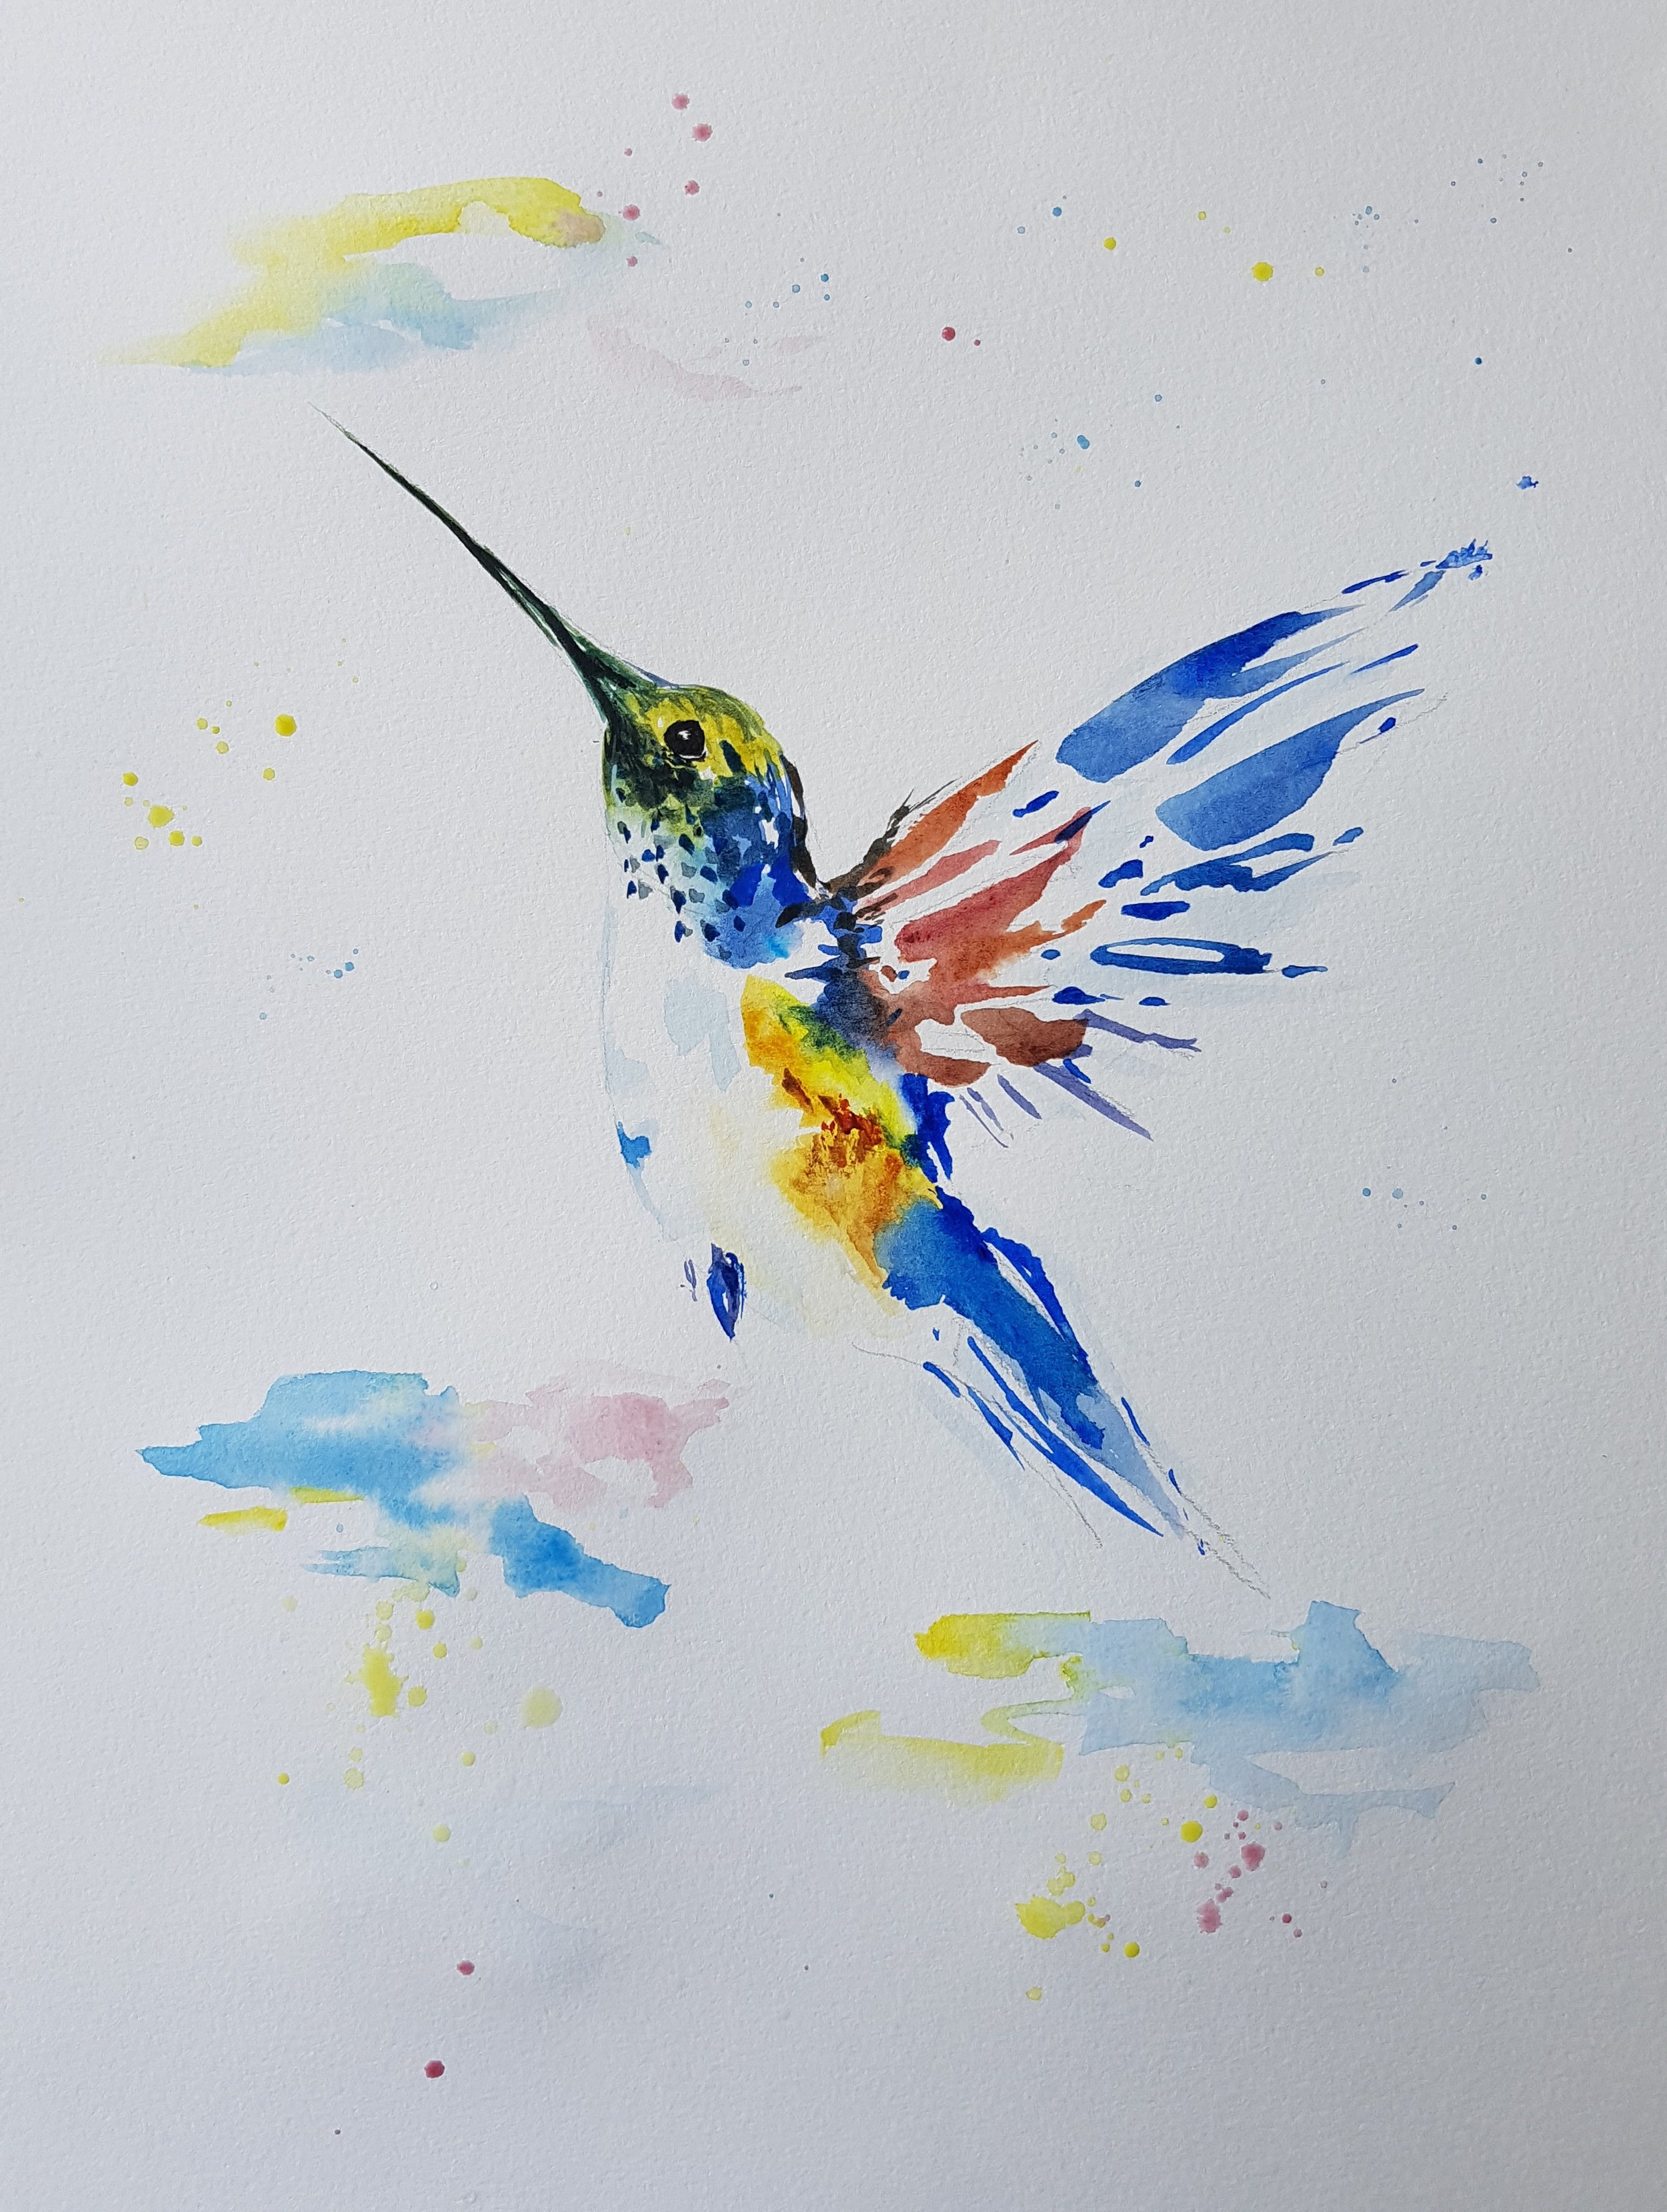 """""""Colibrí"""" 11x8.5"""" [SOLD]  I painted this as an exercise in minimalist strokes. After looking at what were the most essential parts of the reference photo, I tried to paint as little of the original as possible."""